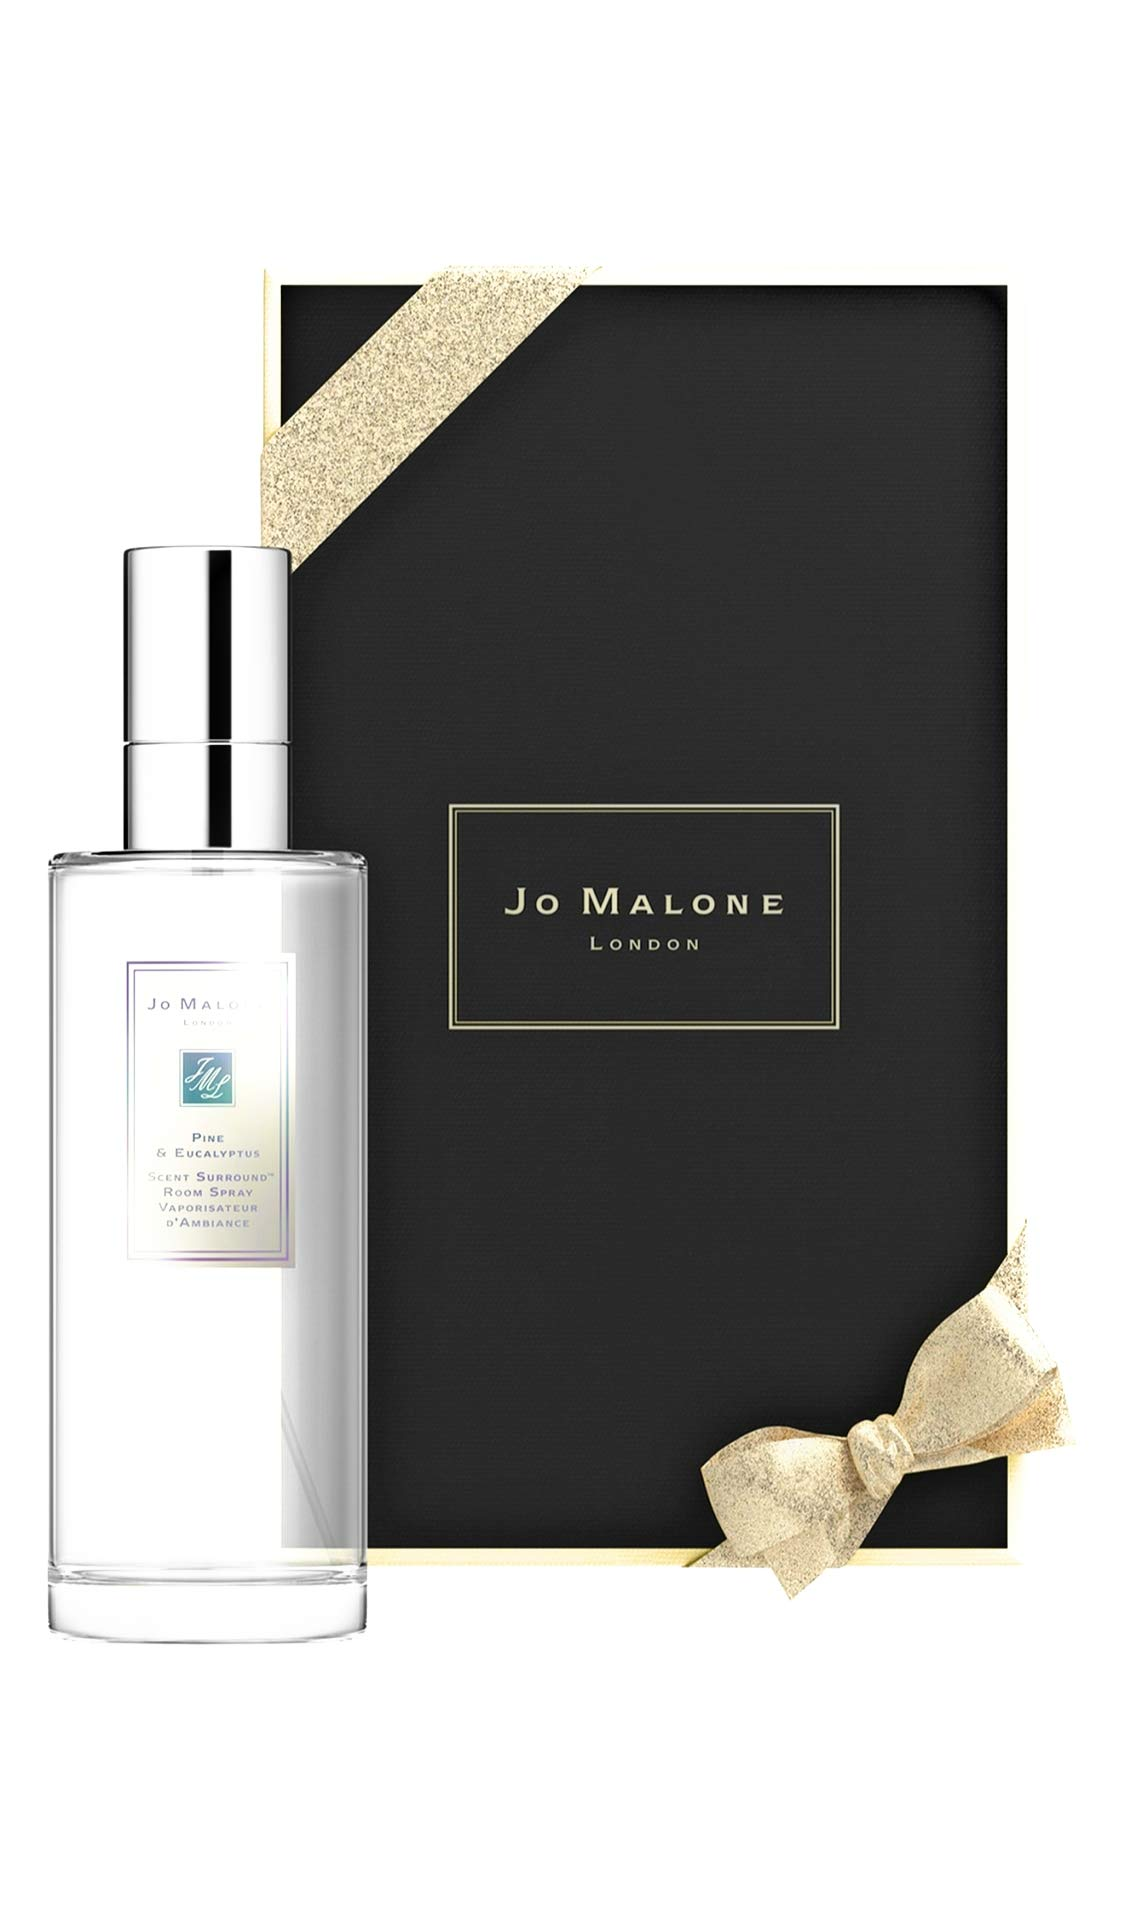 Jo Malone Pine & Eucalyptus Scent Surround Room Spray 5.9oz. Holiday Limited Edition with Jo Malone gift box